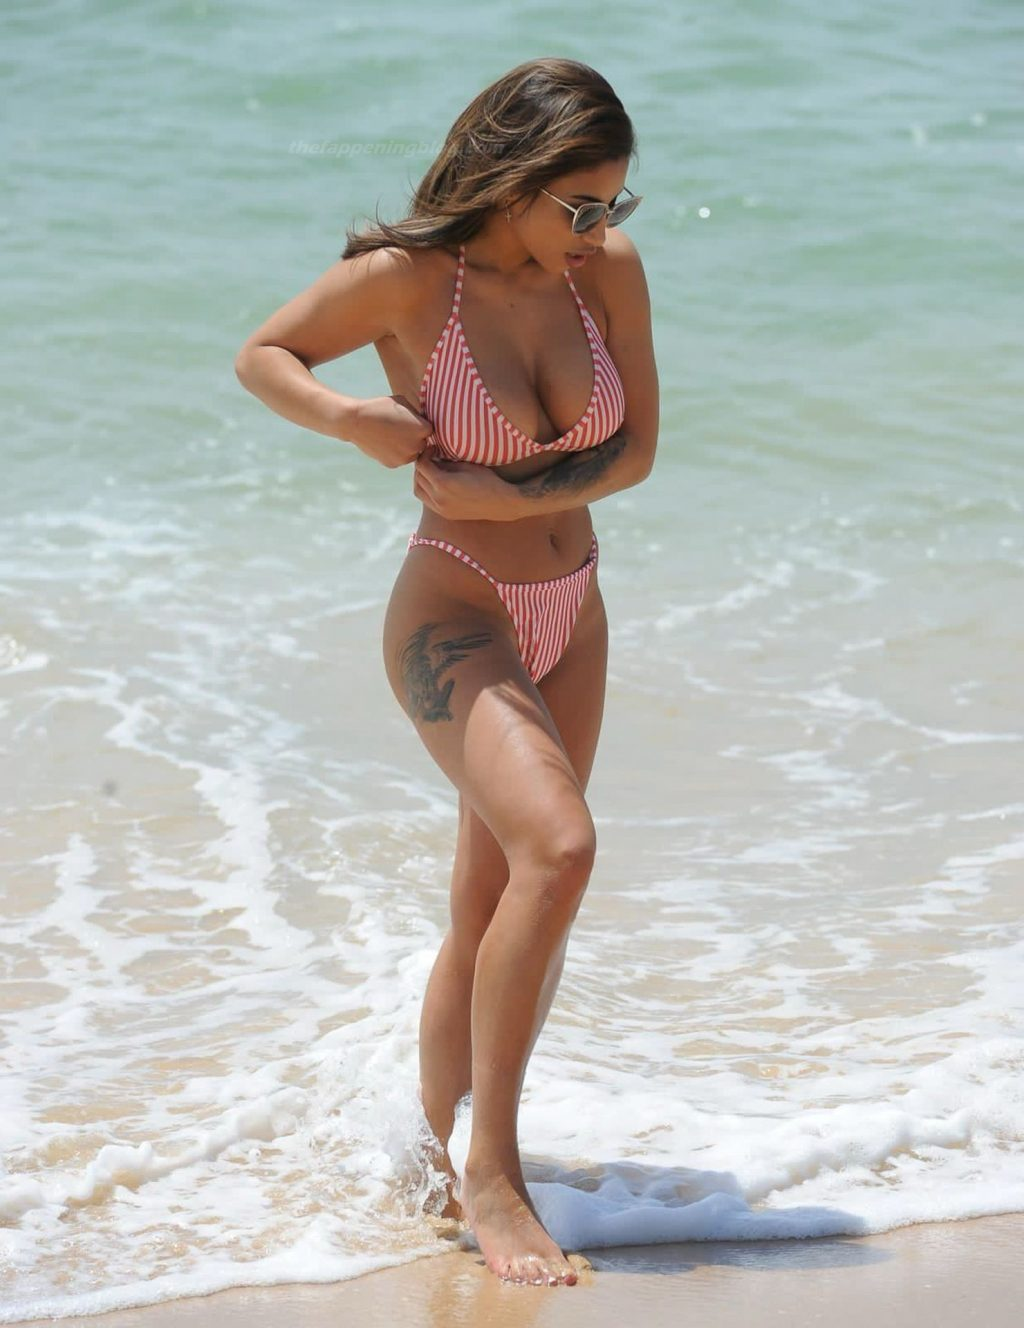 Kayleigh Morris Enjoys a Day on the Beach During a Recent Break In Cyprus (19 Photos)